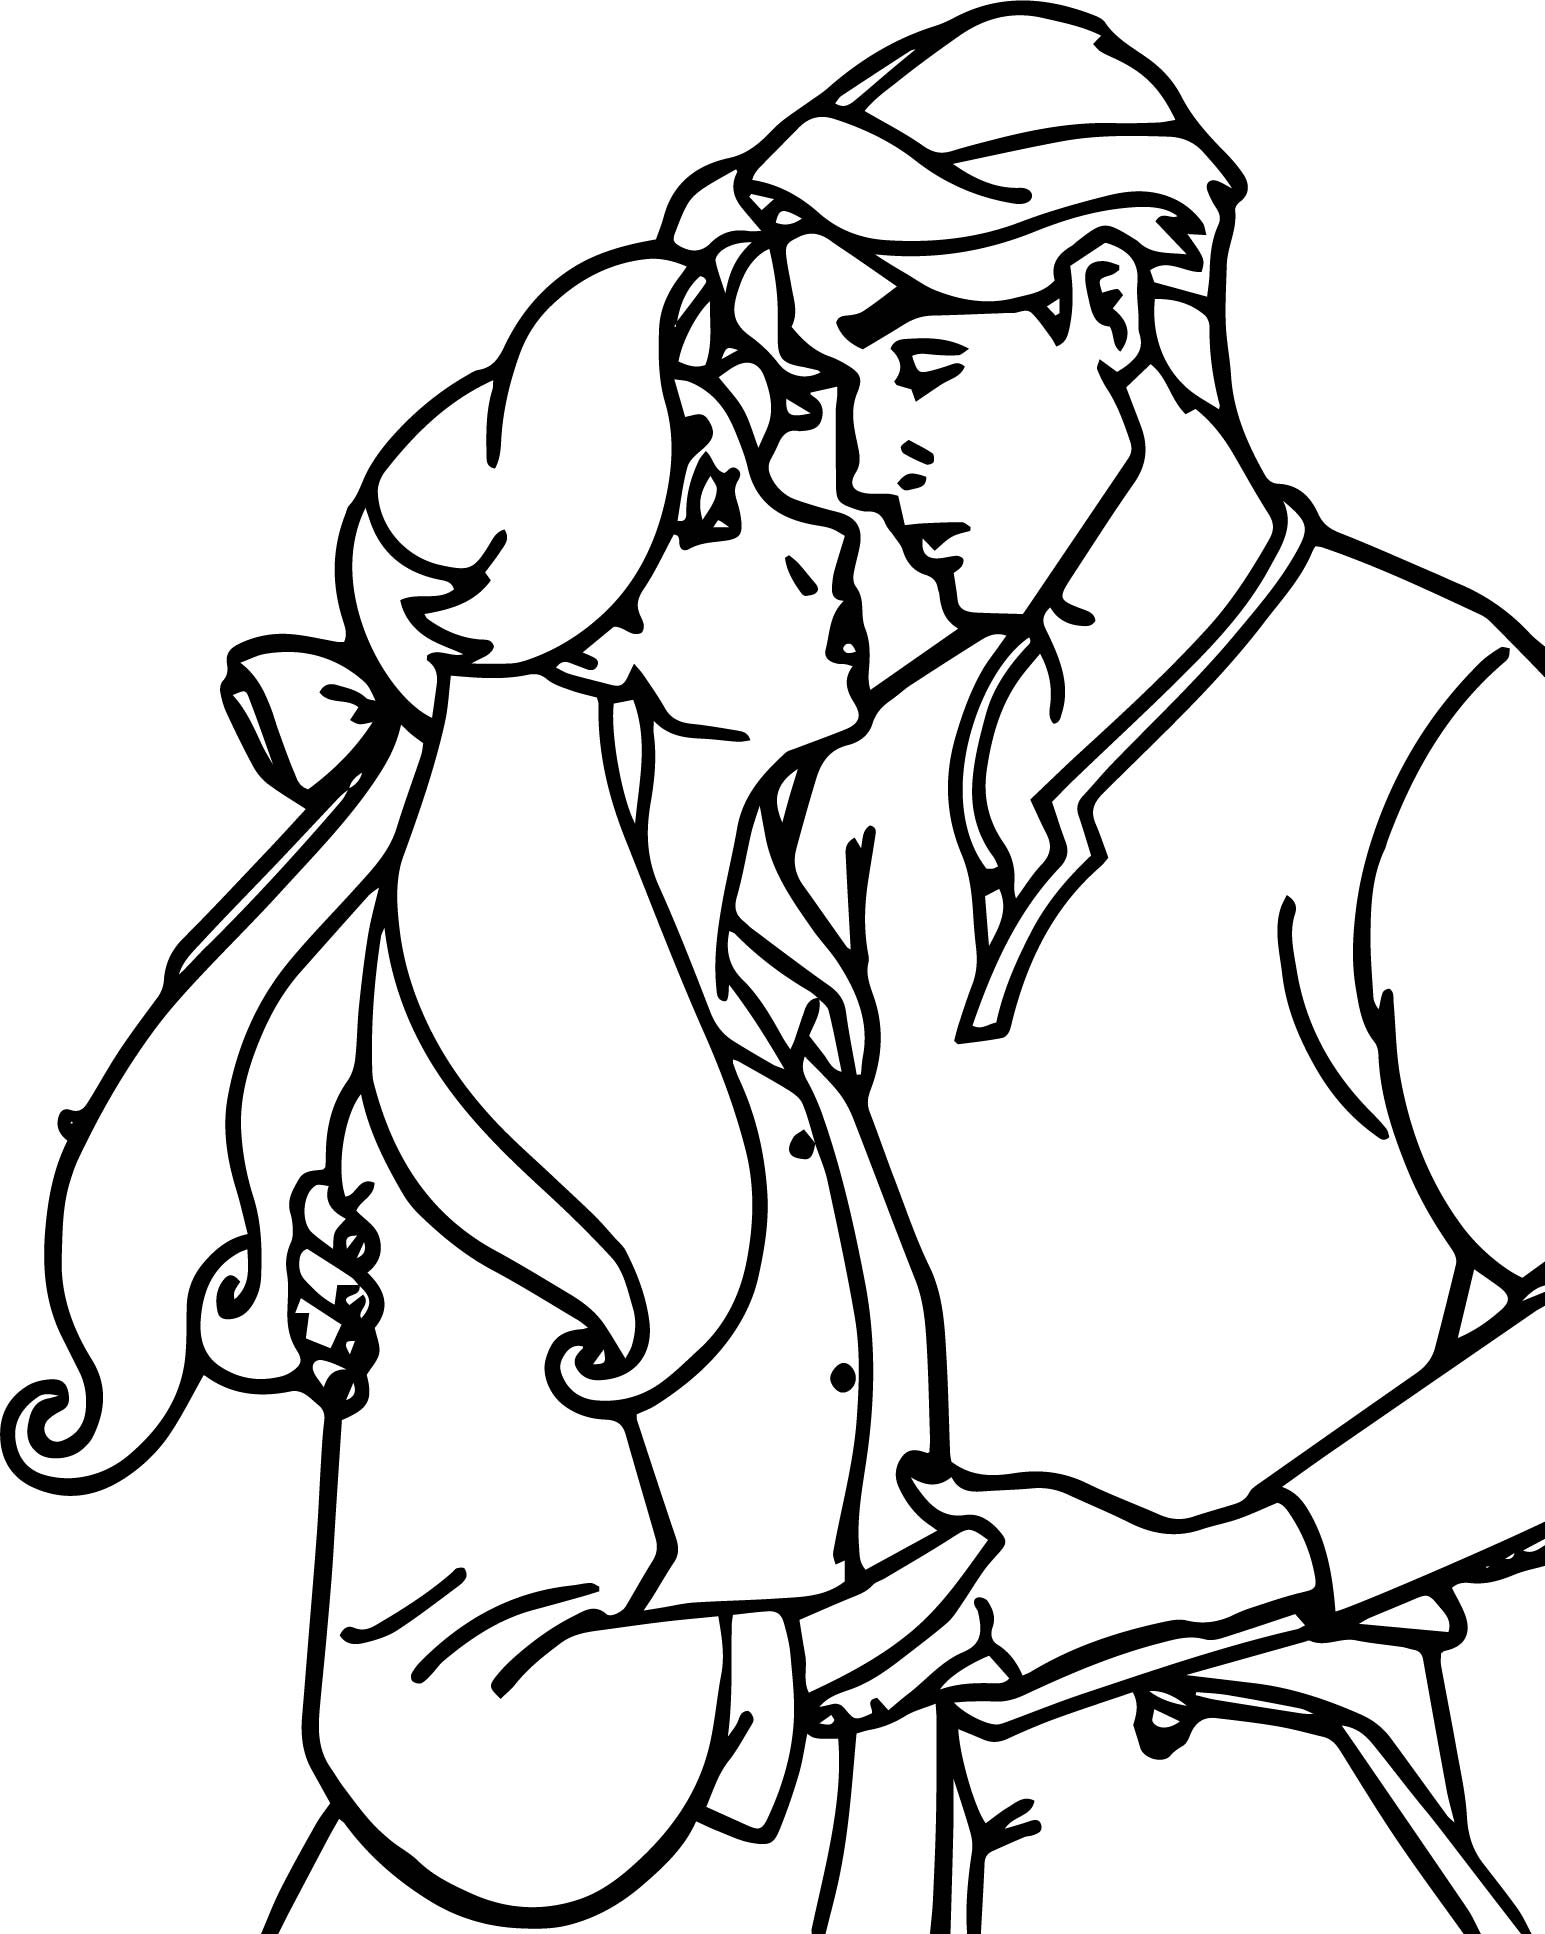 Coloring pages for boyfriend - Anastasia And Boyfriend Hope Coloring Pages